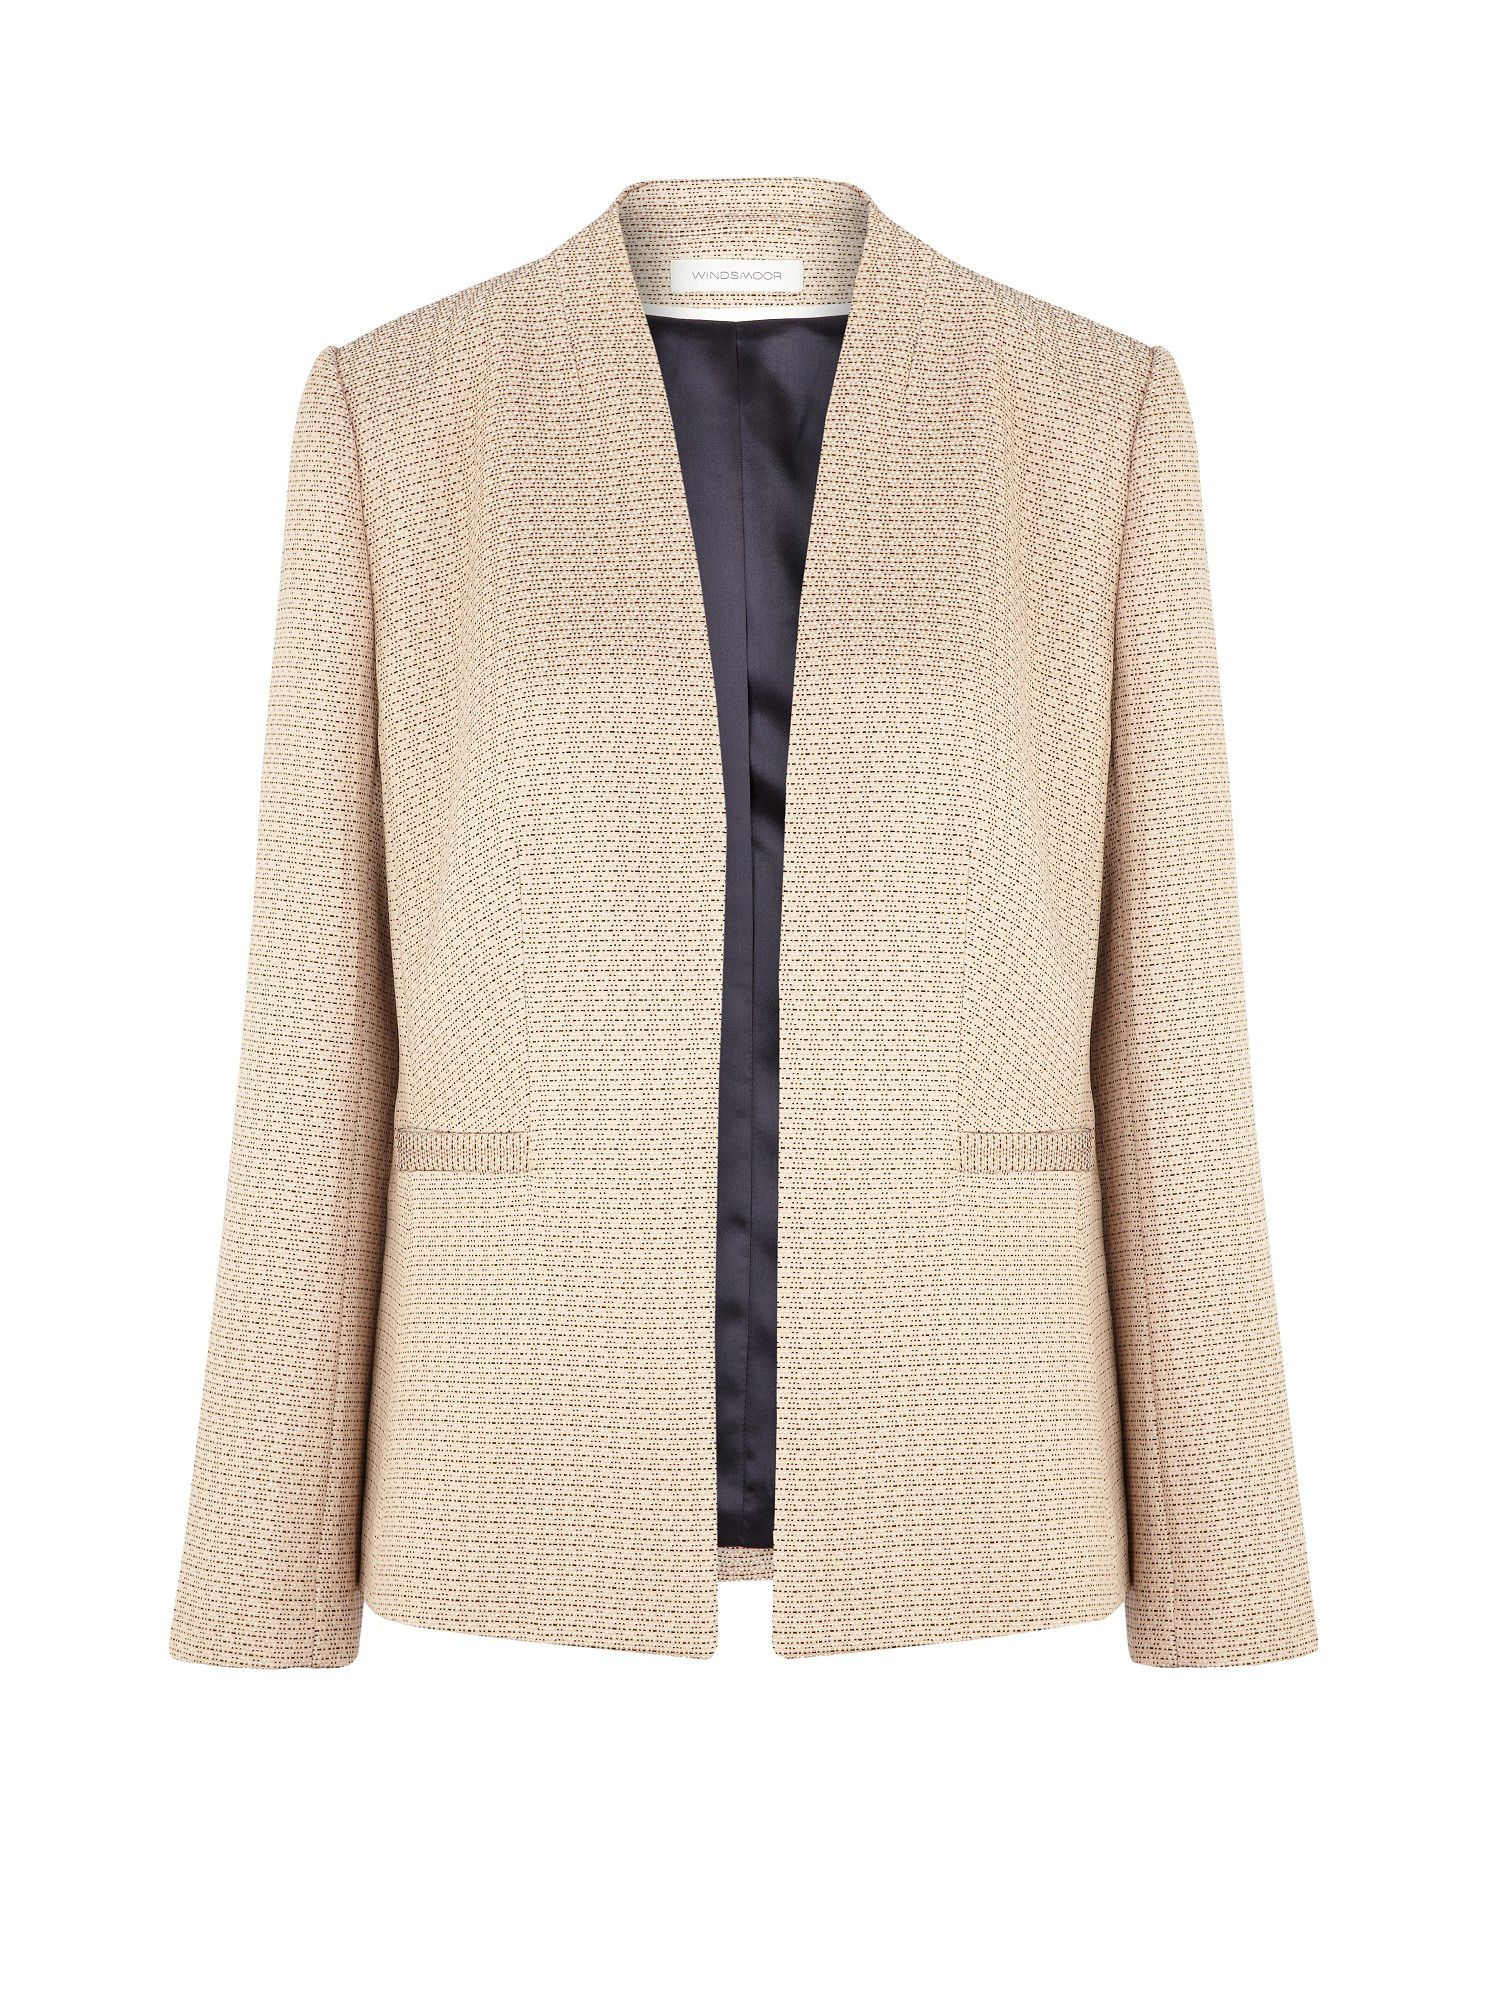 Blush Tweed Jacket